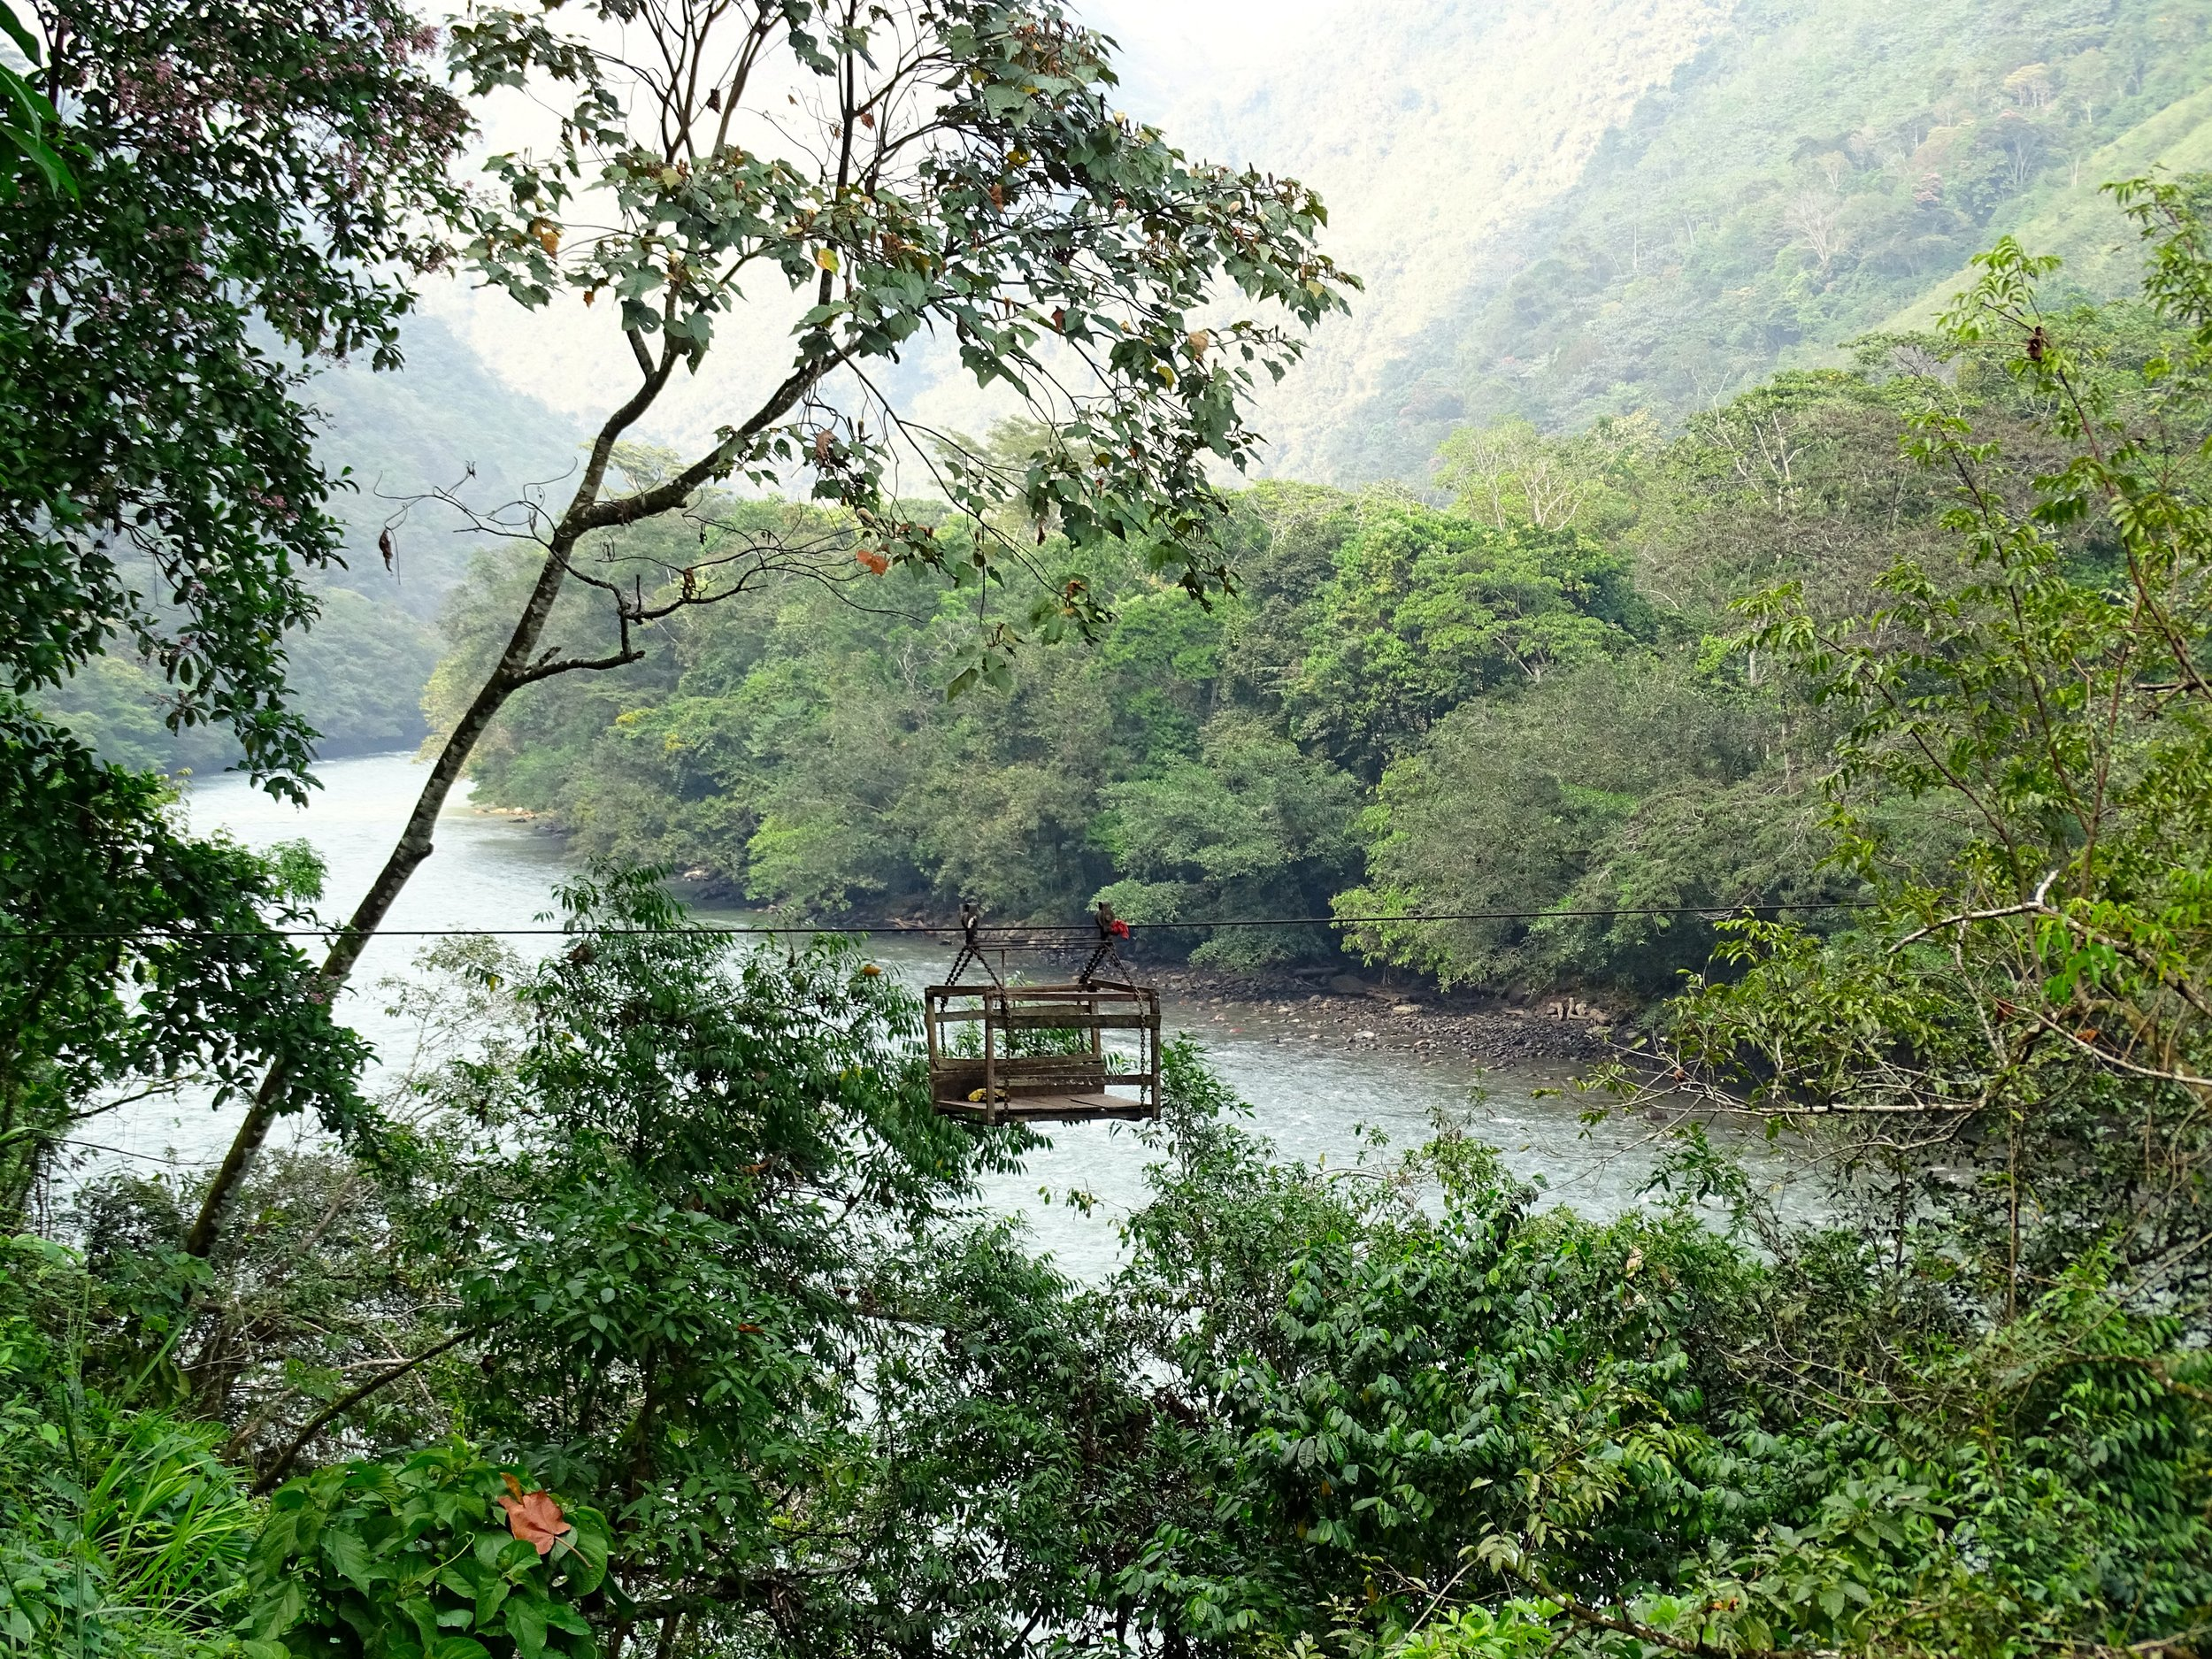 Again, we rode along the beautiful Rio Huallaga, already plenty big, well upriver of where we first saw it at Yurimaguas..